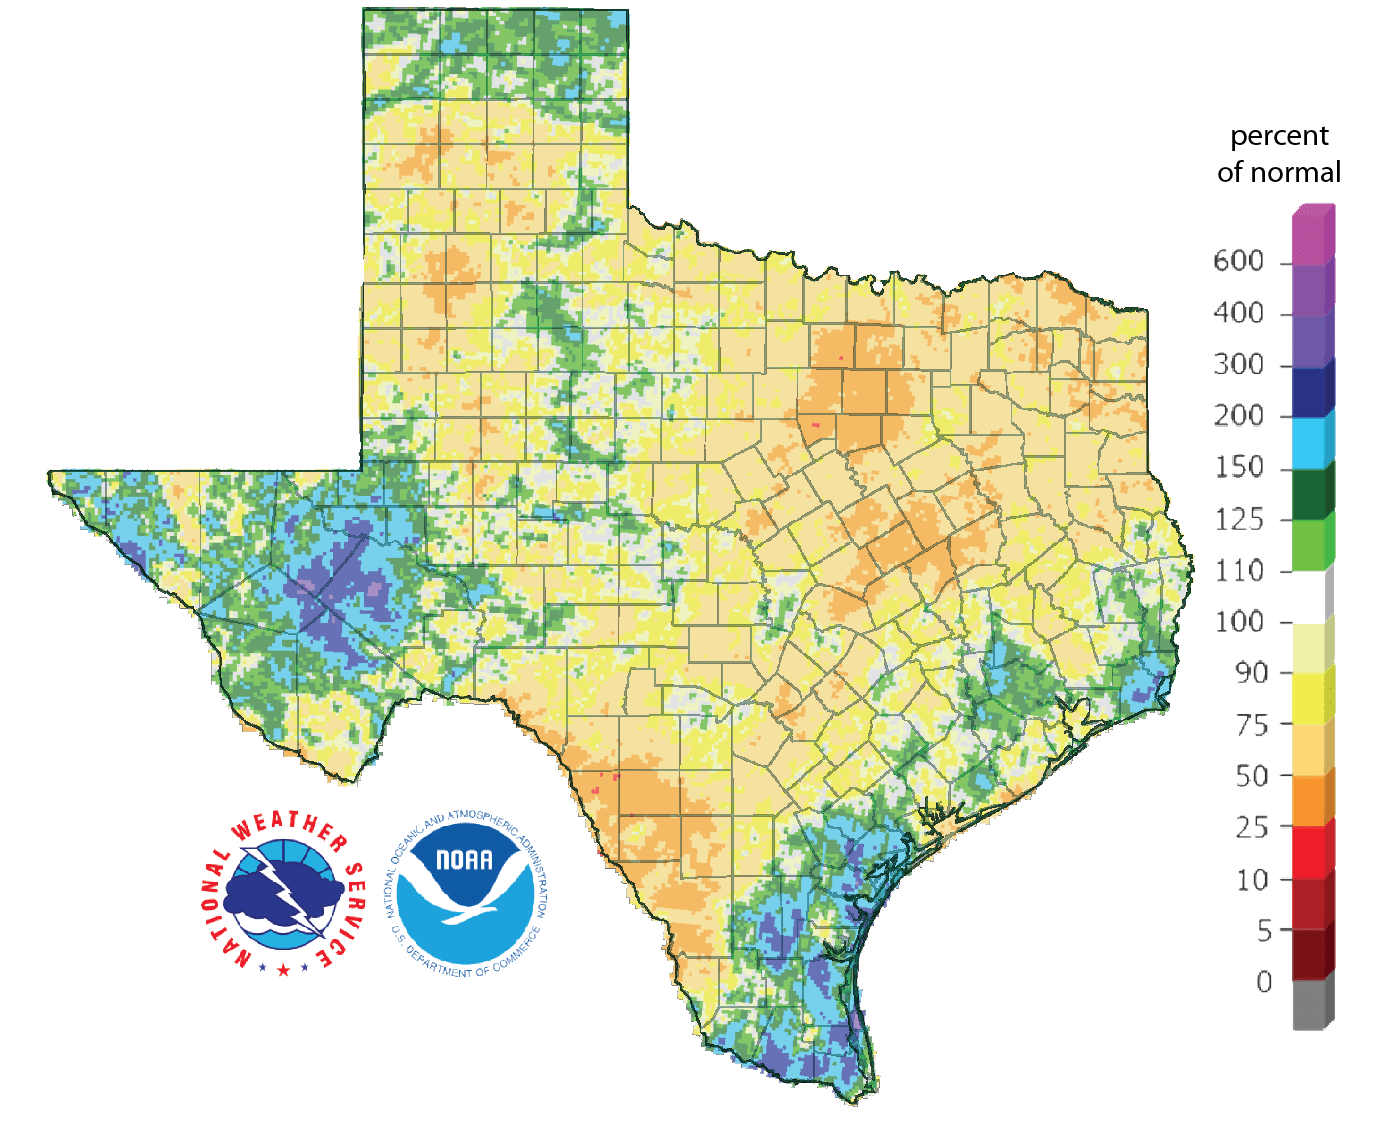 Figure 4. Rainfall as a percent of normal for the past 90 days as of July 18, 2018 (source).